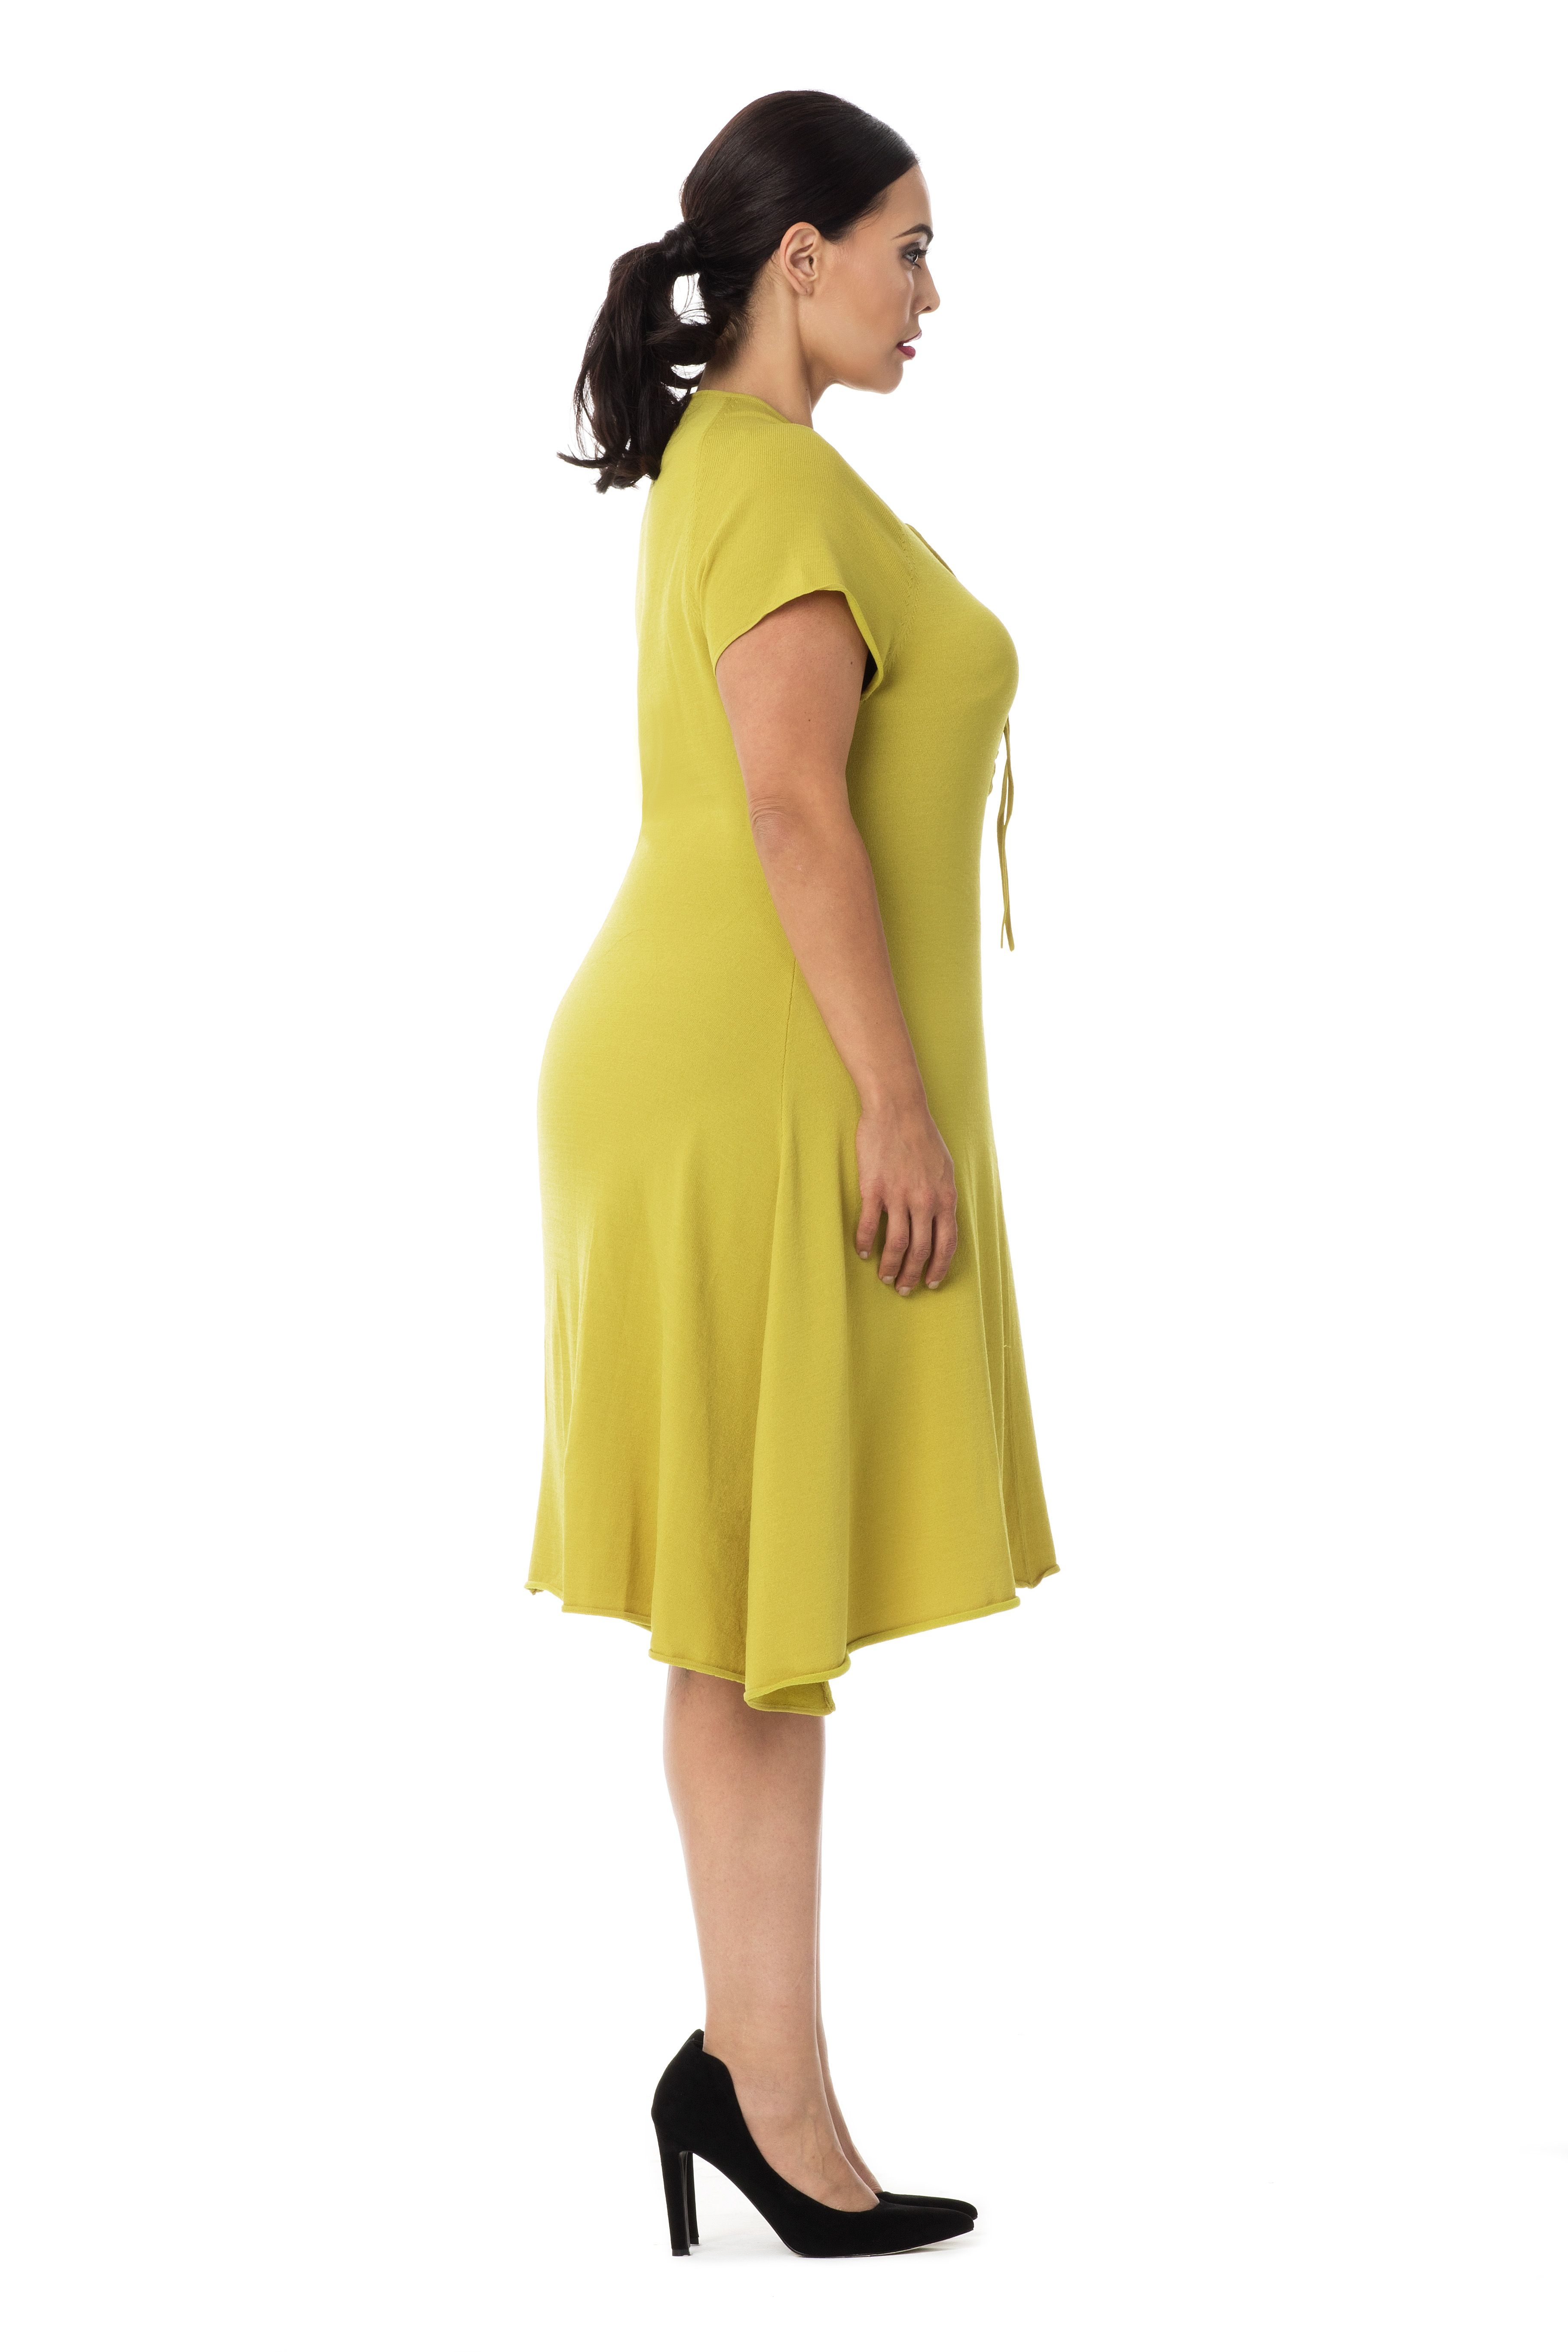 Luxury Plus Size Fashion The Ashley Dress Best For All Body Types